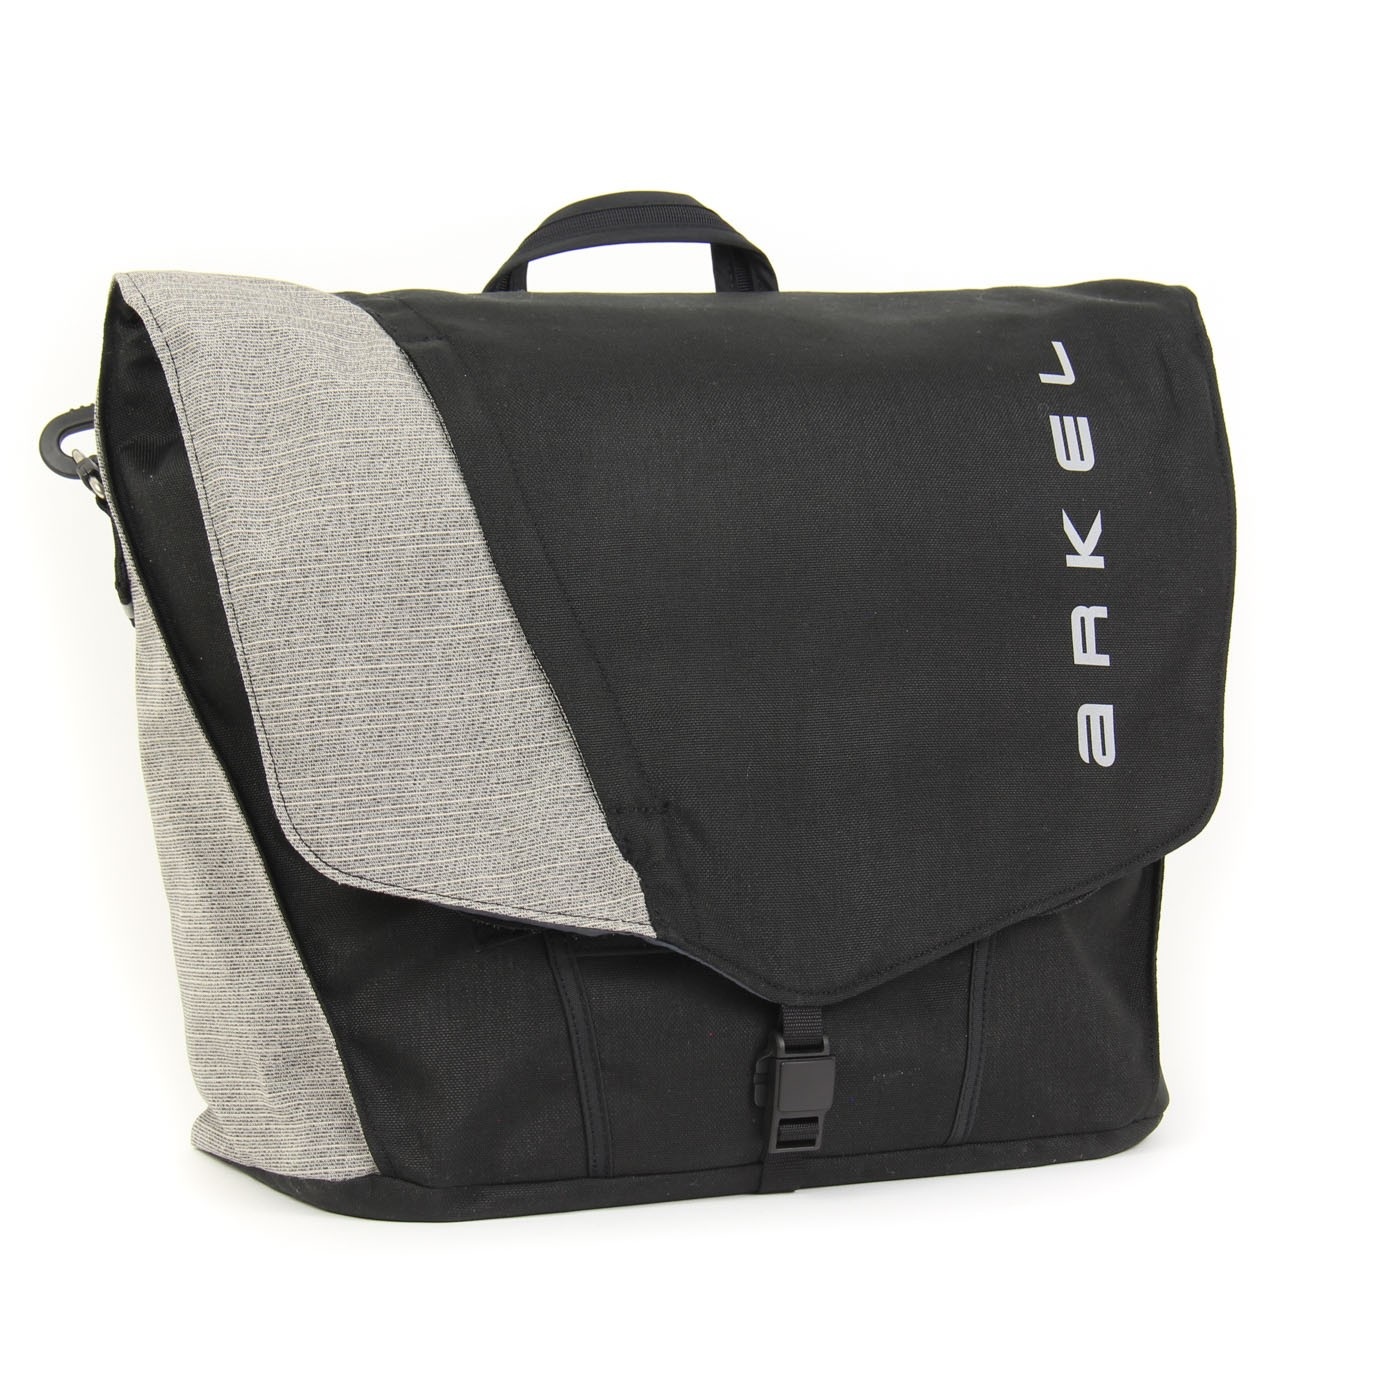 Briefcase Laptop Pannier In Black Grey Color